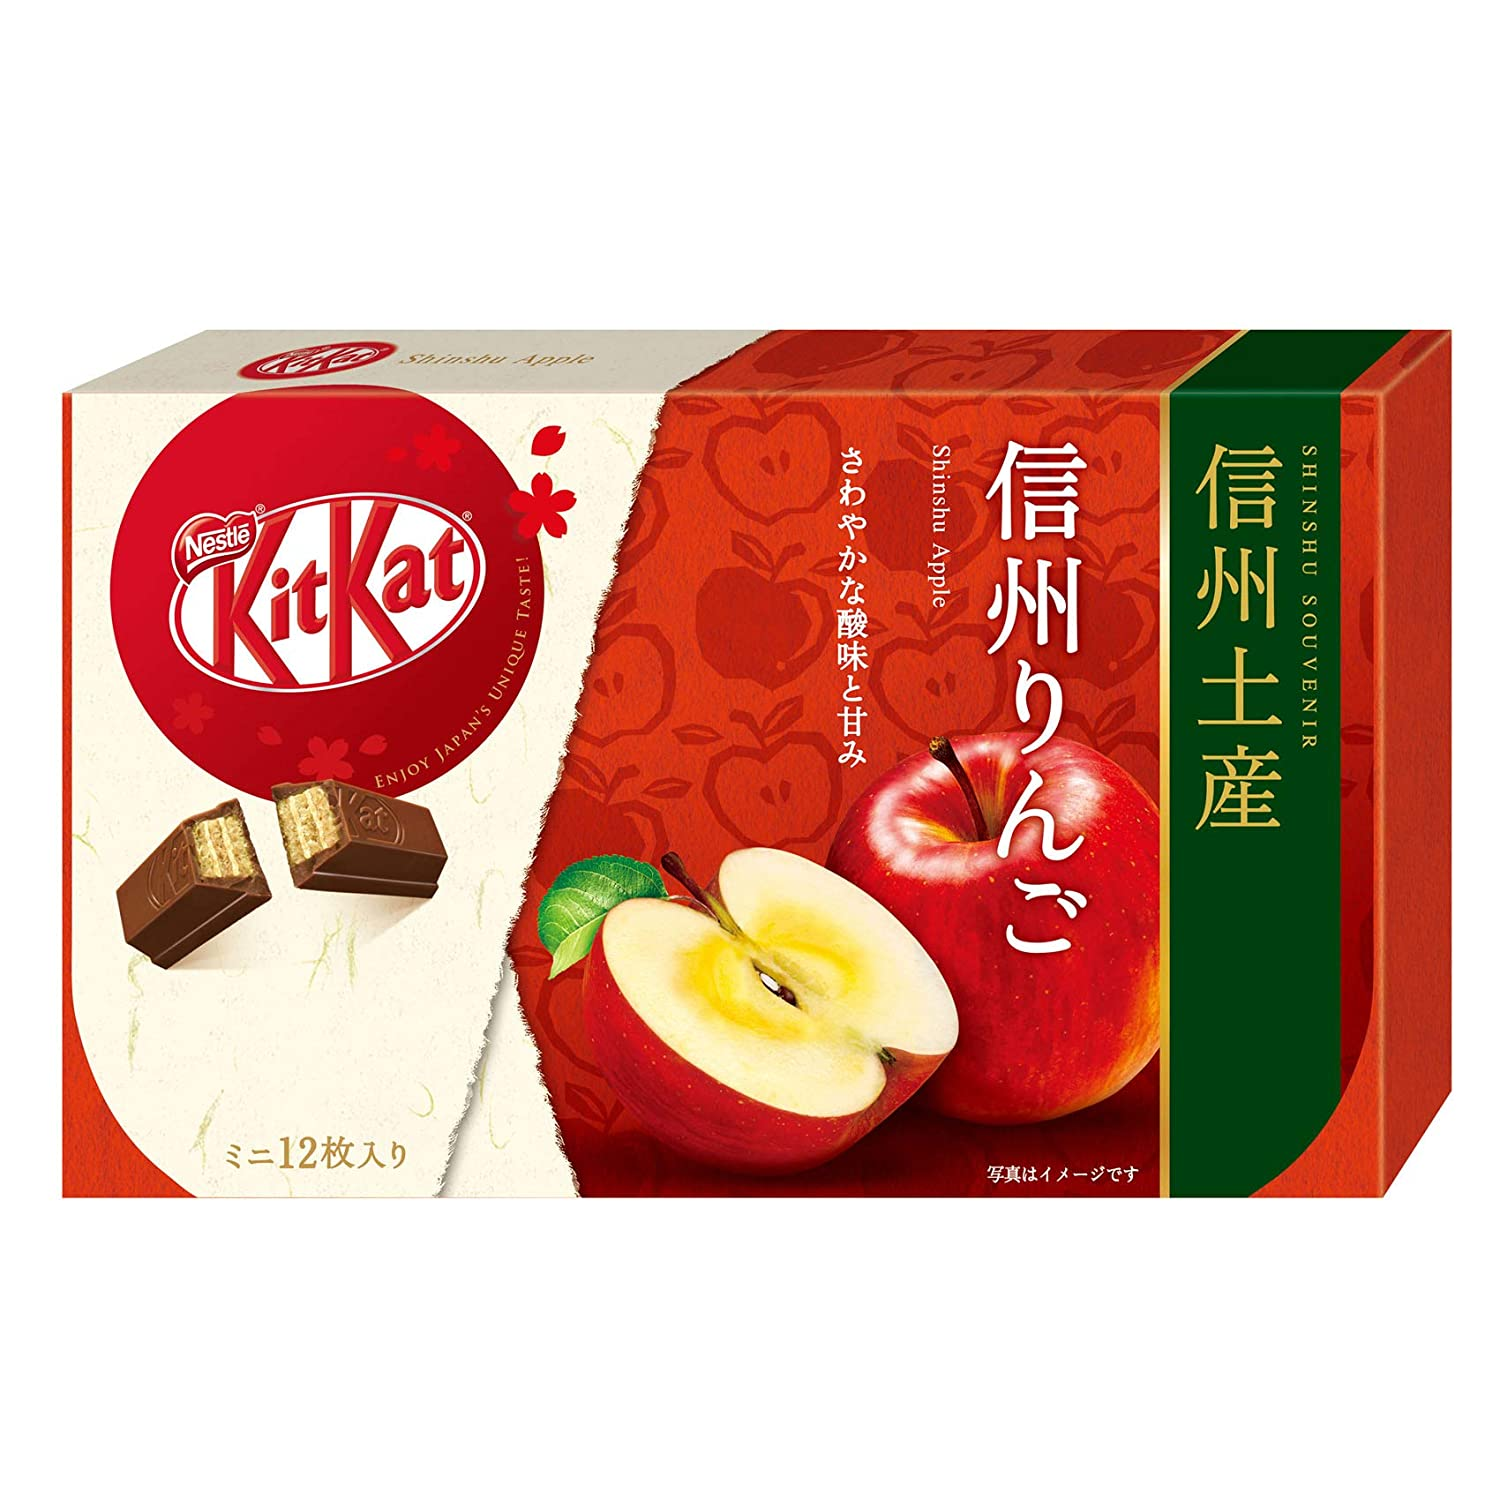 Japanese Kit Kat - Shinshu Apple Chocolate Box 5.2oz (12 Mini Bar)